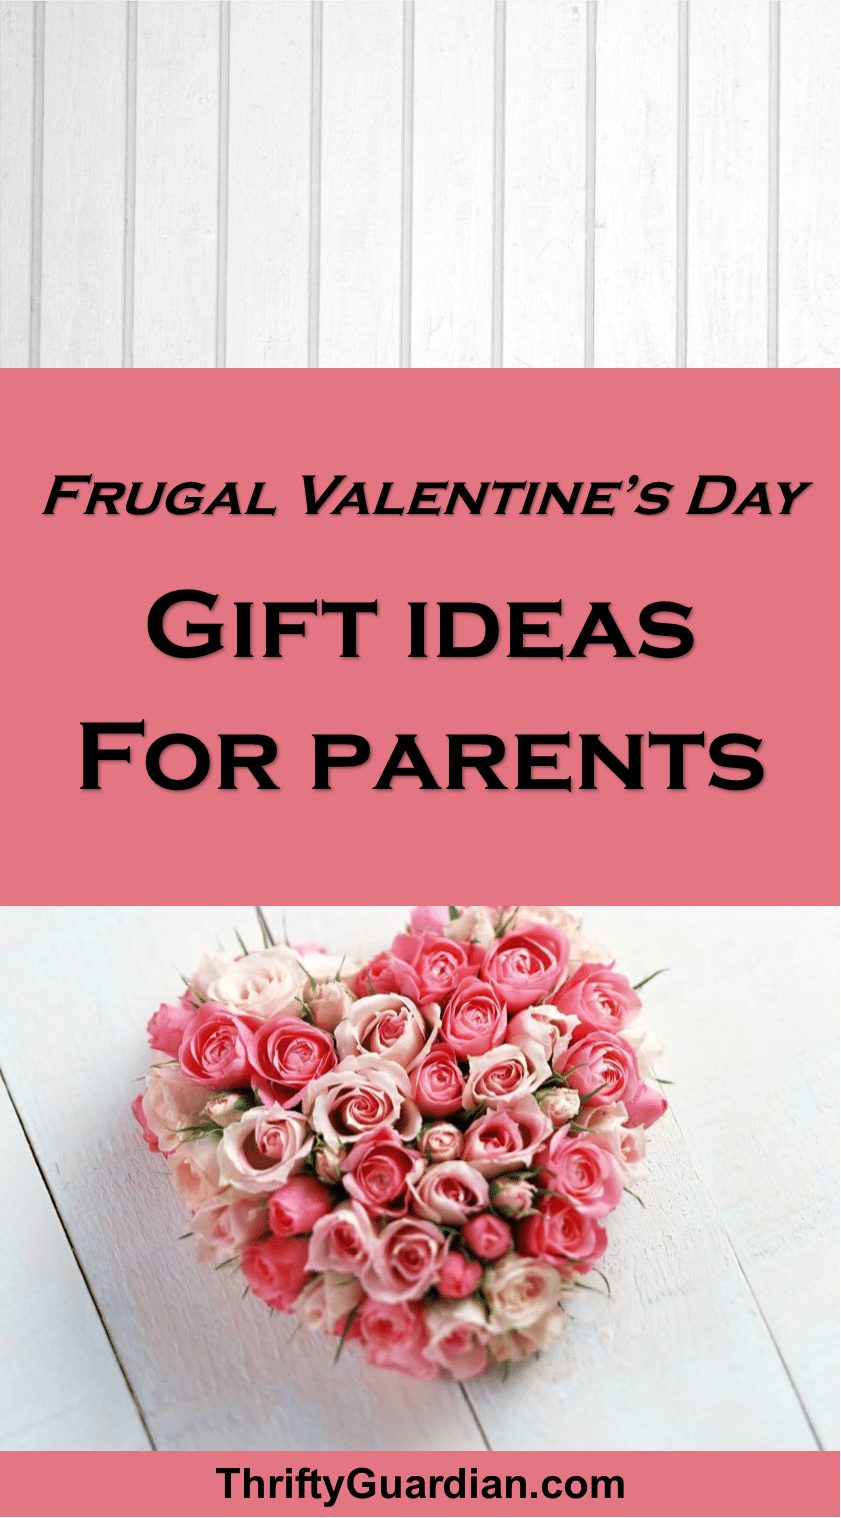 Valentine's Day gift ideas for mom, gift ideas for parents, gift ideas for dad